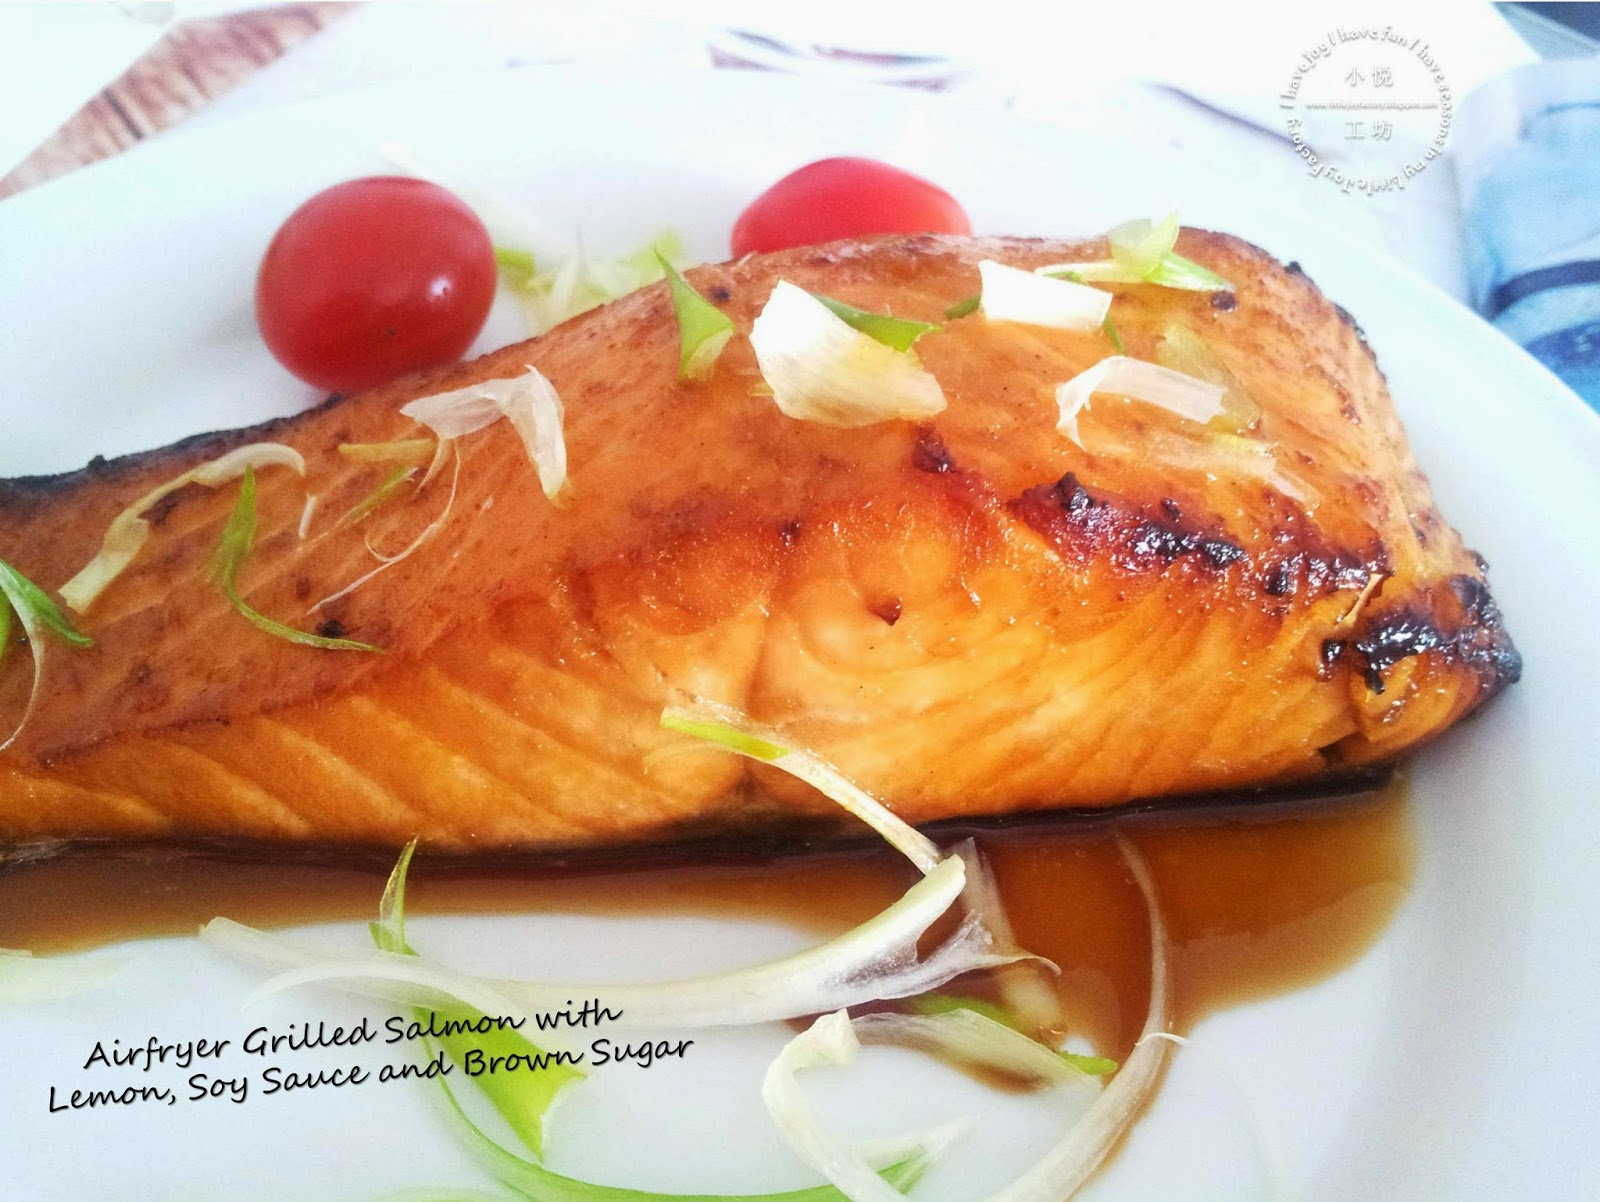 Little joy factory grilled salmon with lemon soy sauce for Air fryer fish and chips